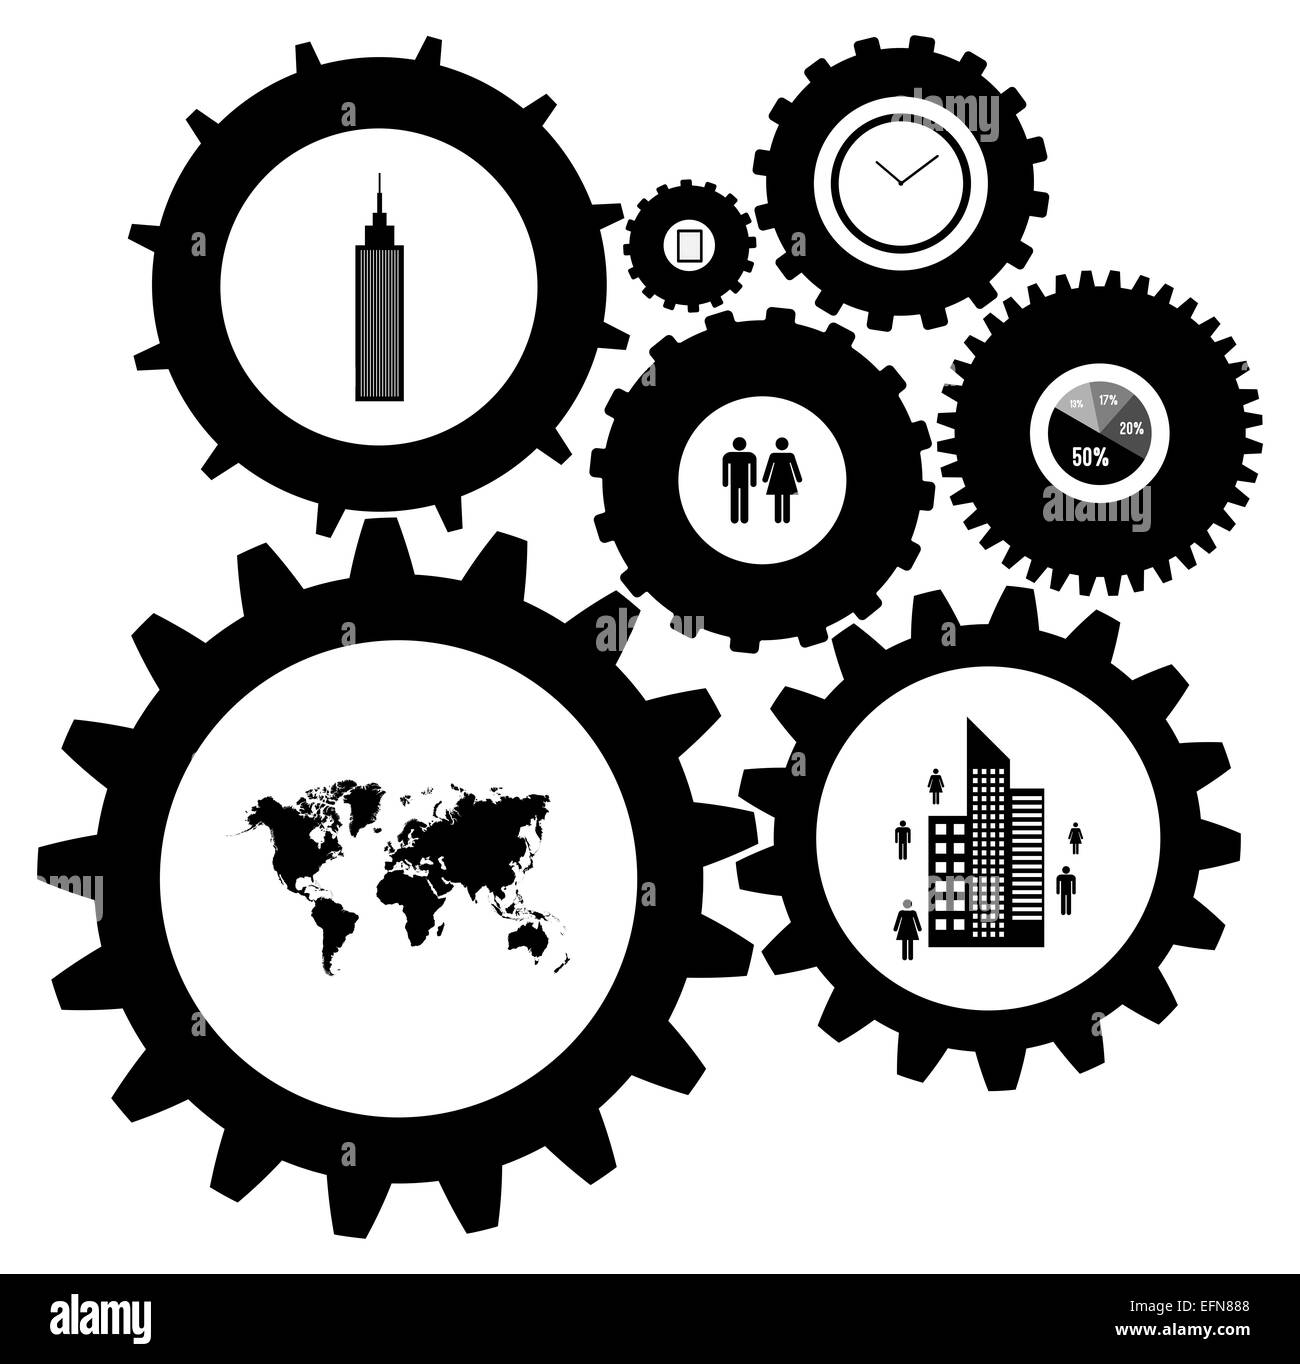 infographic design template with gears and cogs stock photo